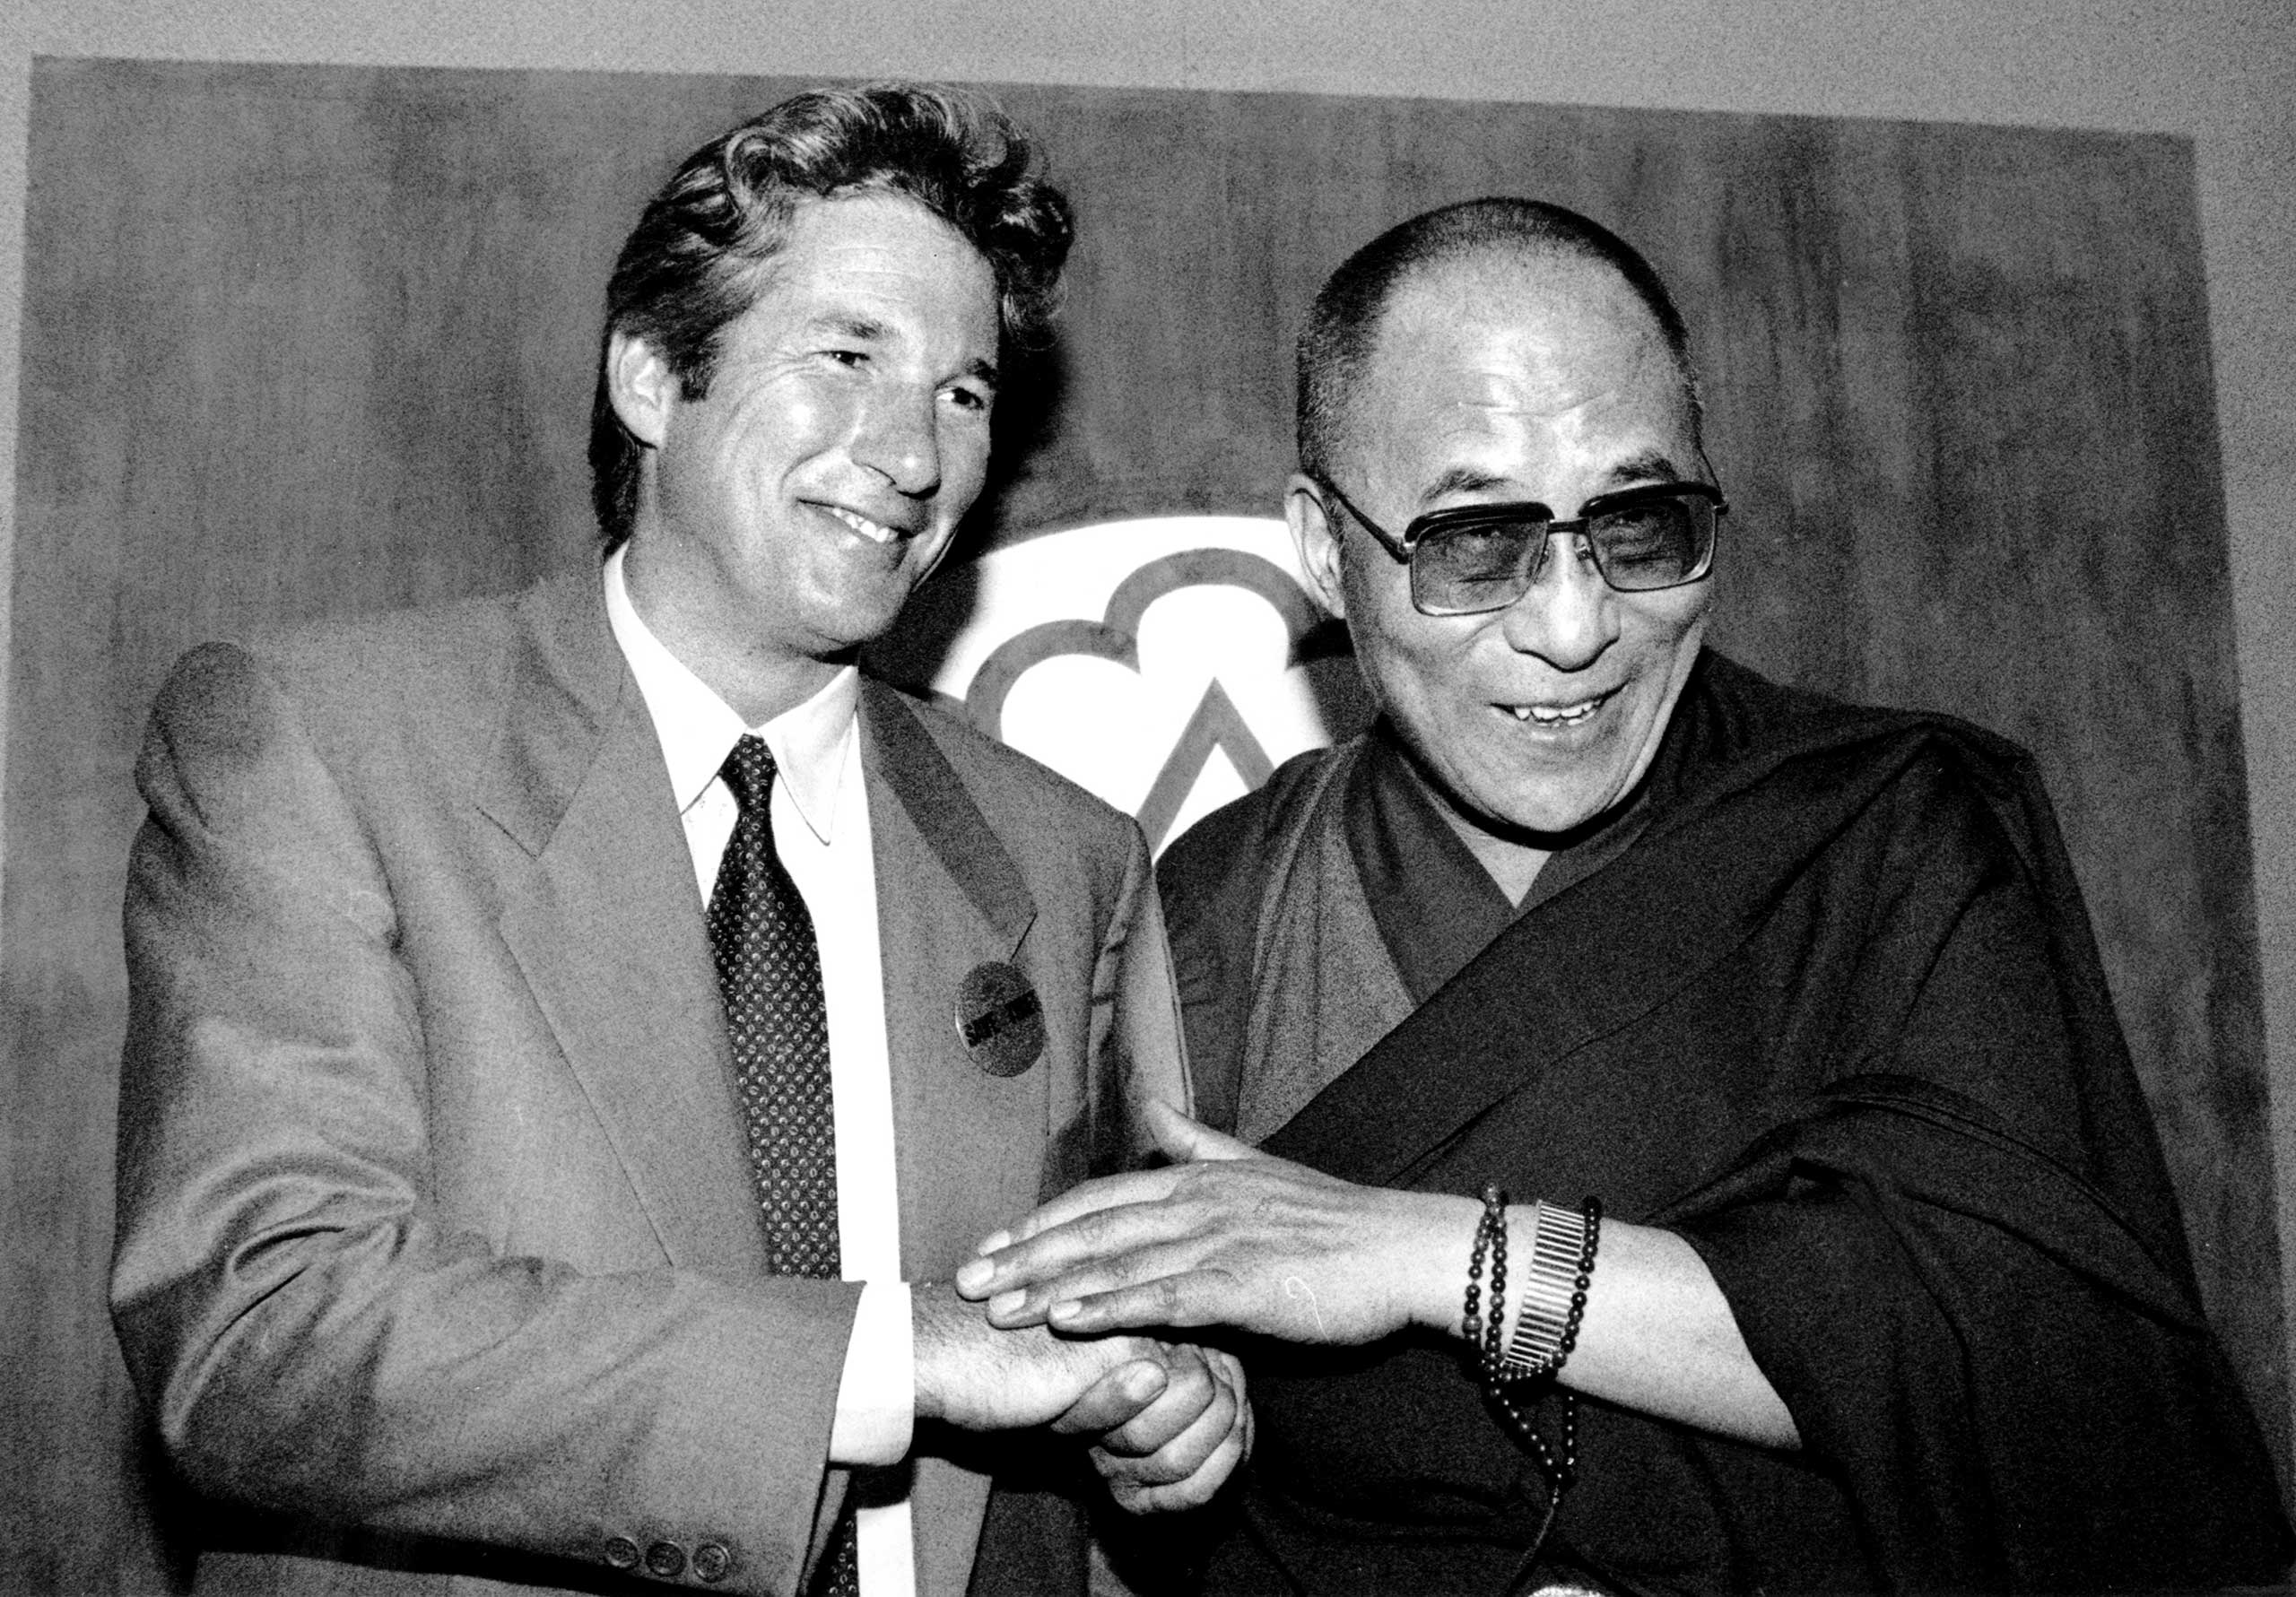 The Dalai Lama and his loyal follower, actor Richard Gere, in New York in September 1990.